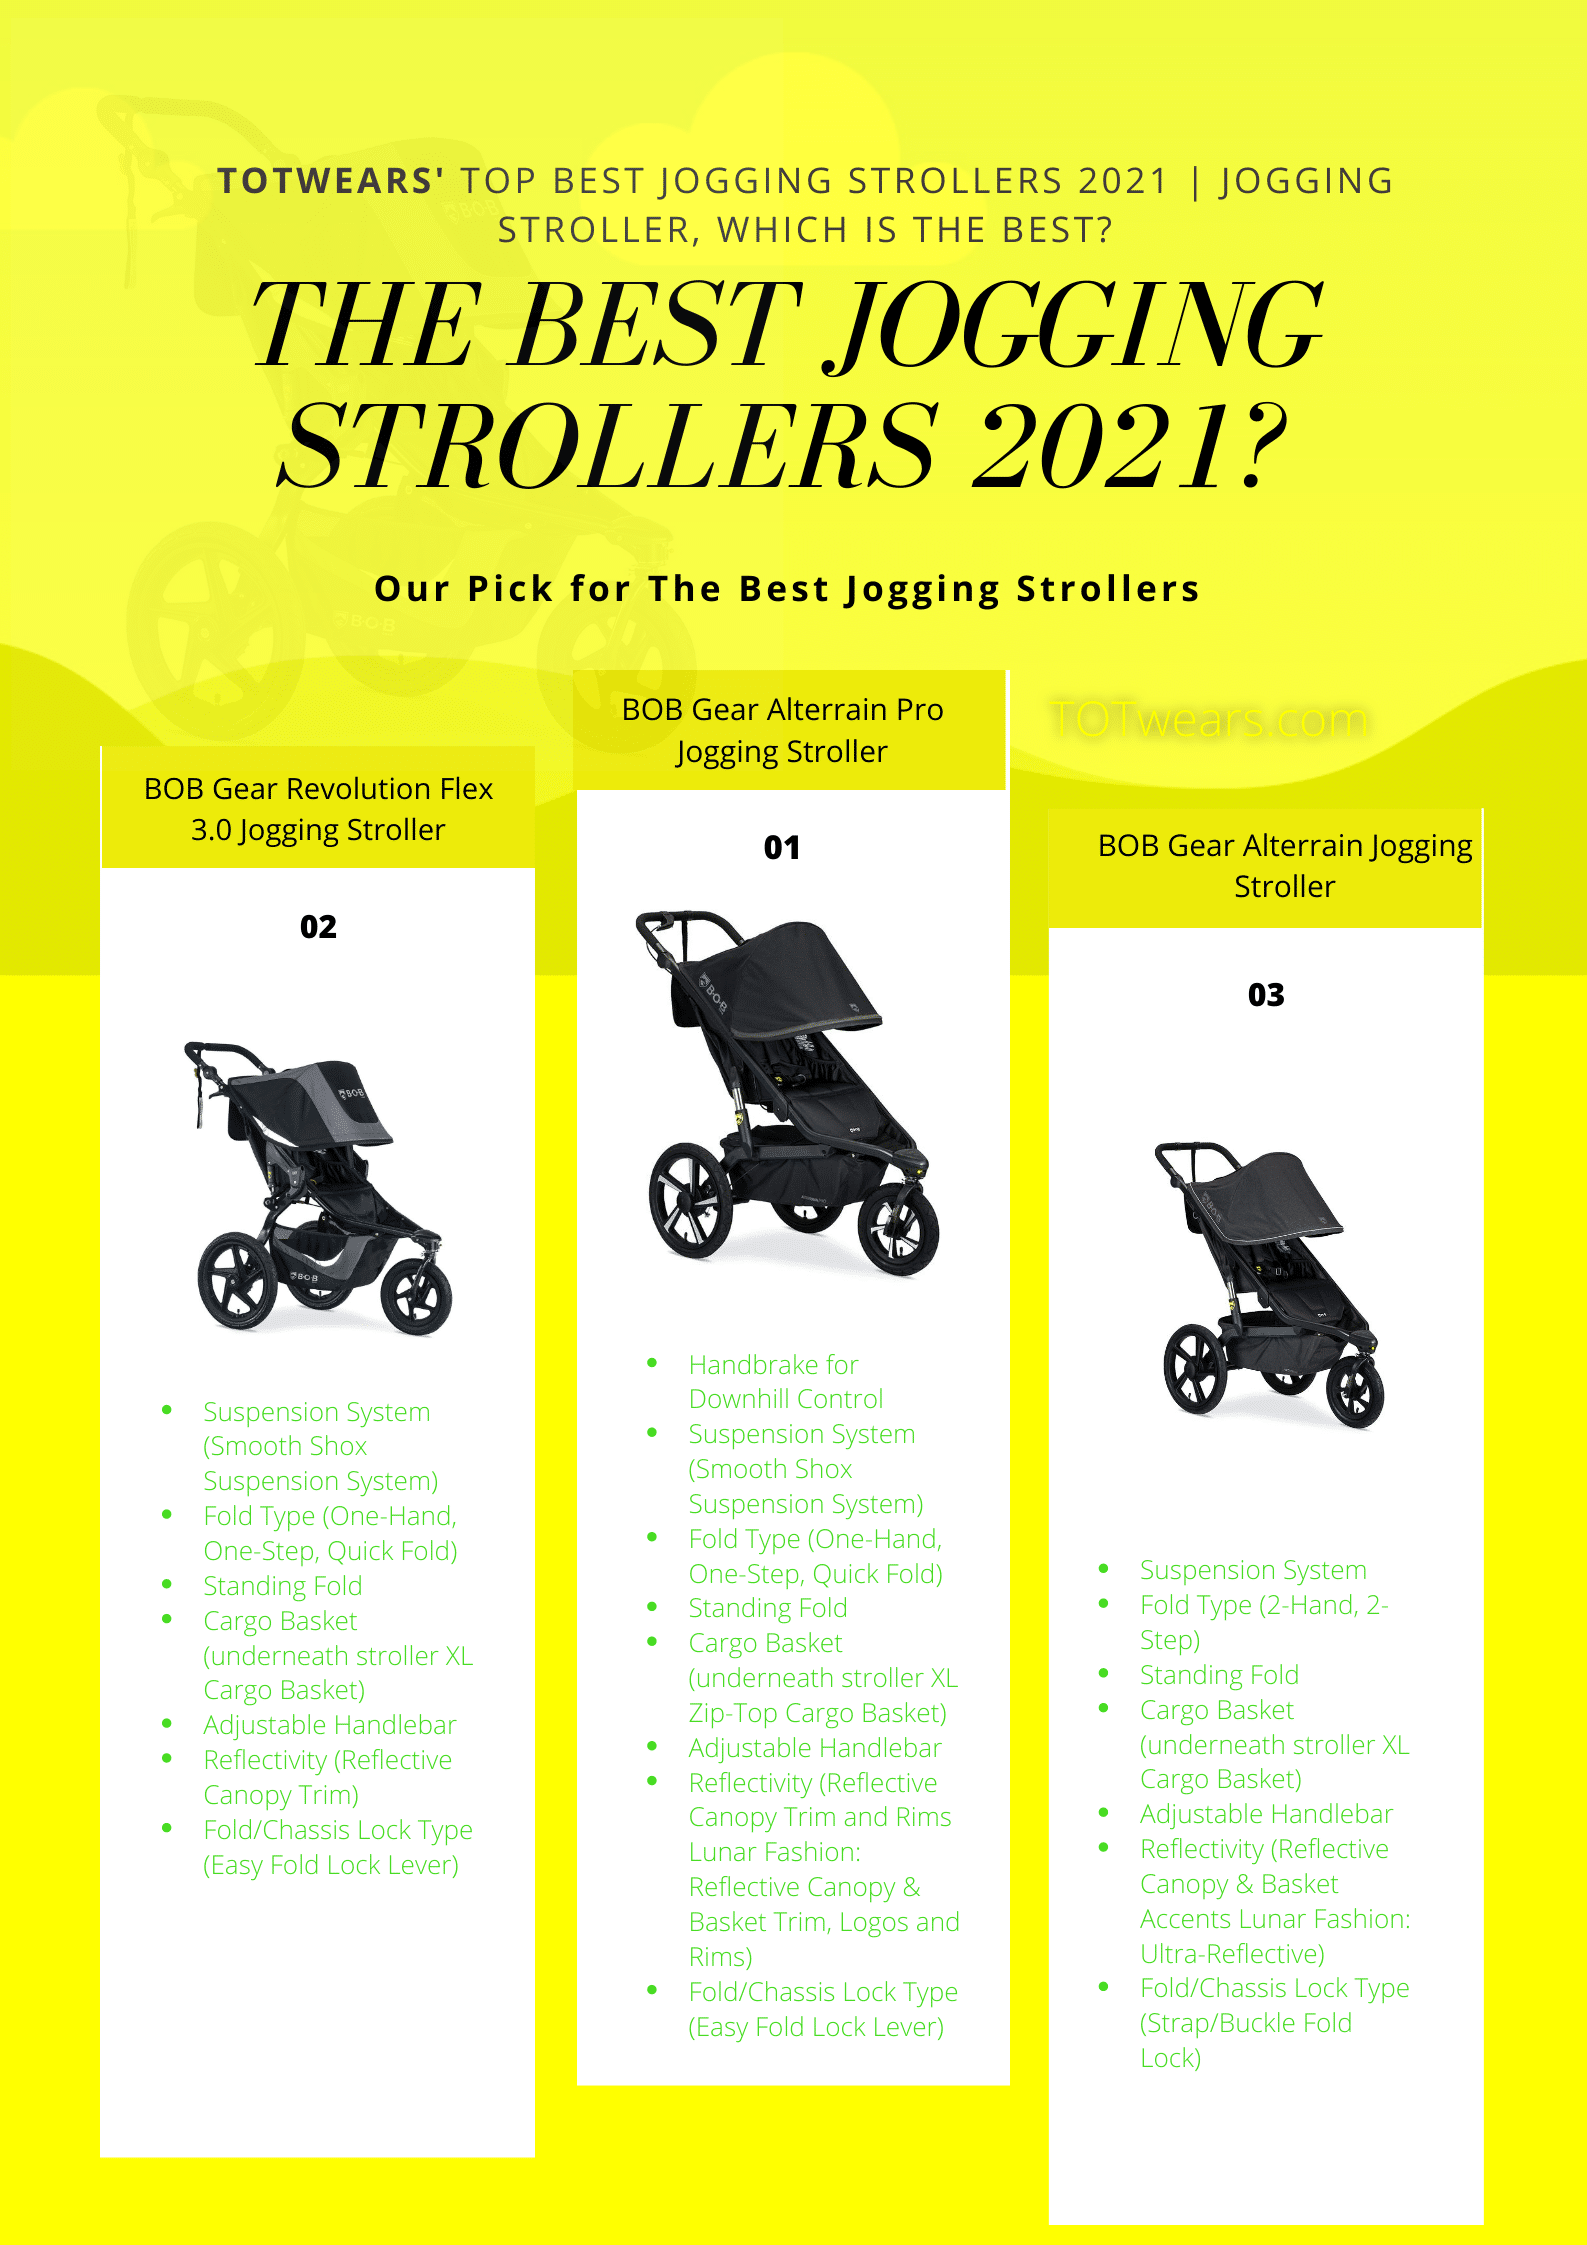 Best Jogging Stroller 2021 Top Best Jogging Strollers 2021 | Best Running Strollers